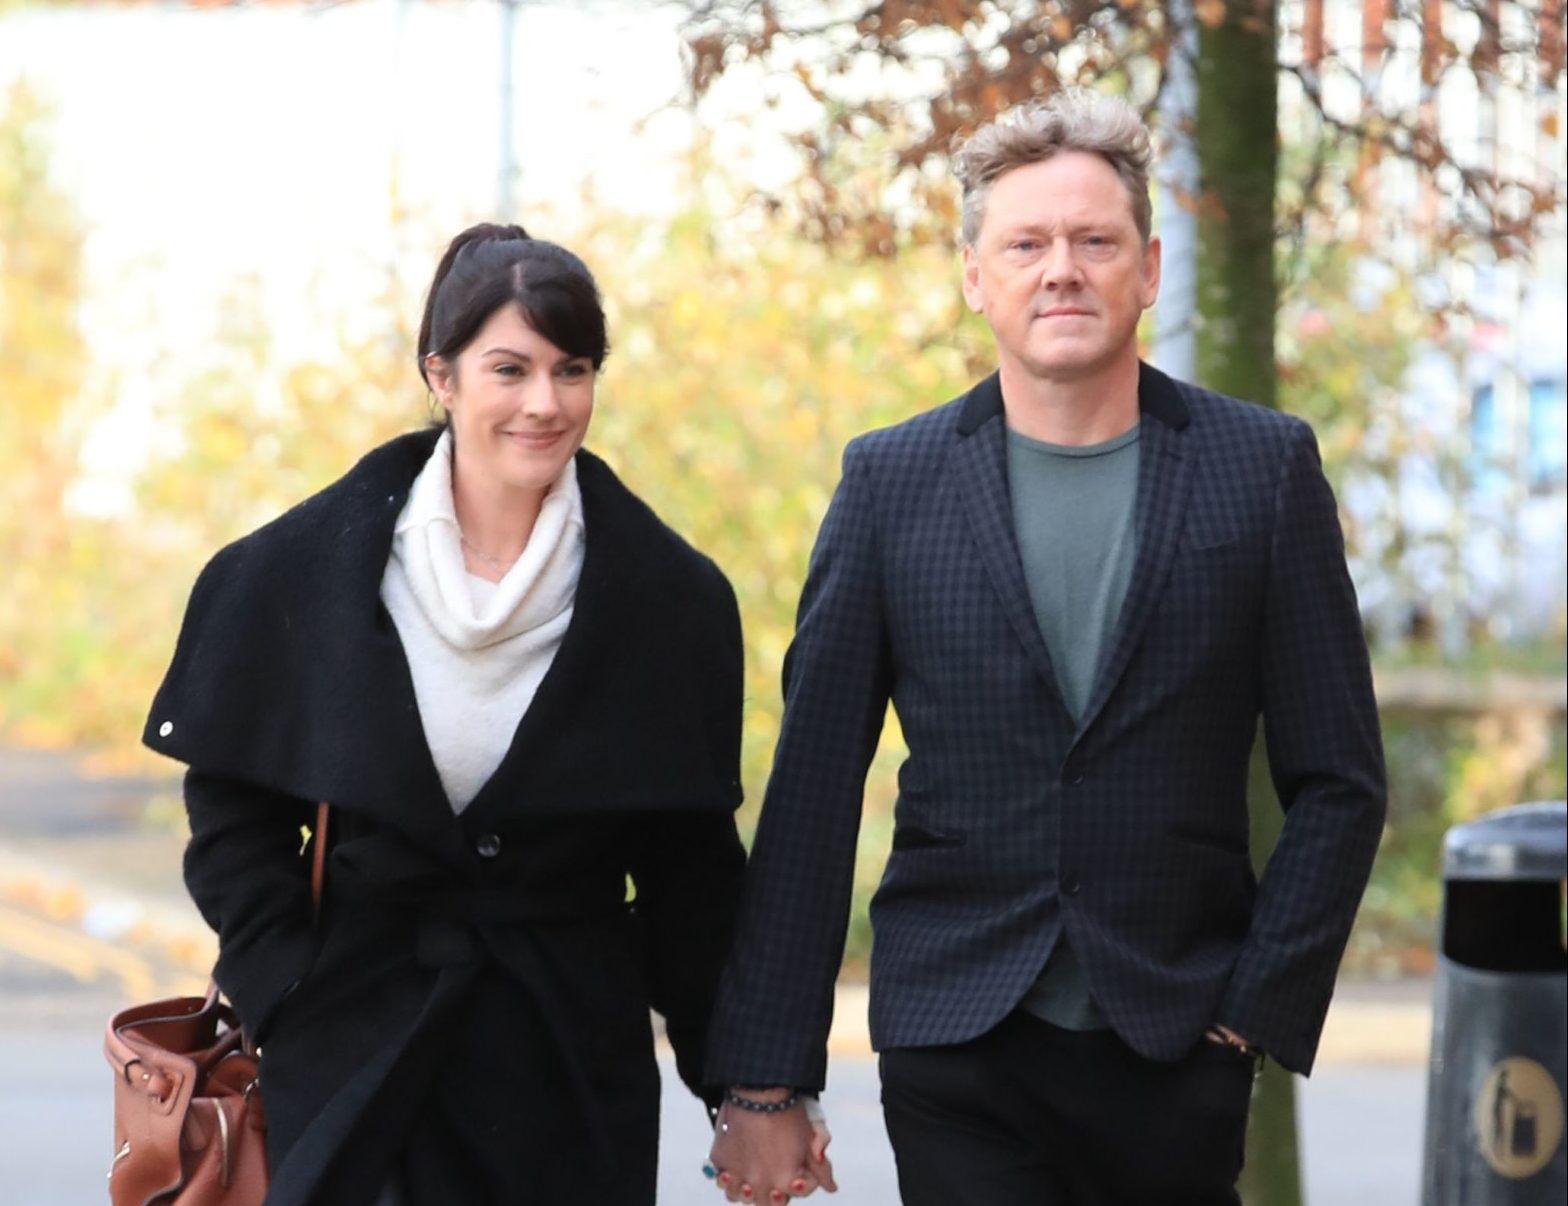 RETRANSMISSION ADDING ADDITIONAL NAME TO CAPTION Emmerdale actors Mark Jordon, 53, and Laura Norton arrive at Tameside Magistrates' Court, in Ashton-under-Lyne, where he is charged with grievous bodily harm and assault. PRESS ASSOCIATION Photo. Picture date: Thursday November 8, 2018. Jordon, 53, who plays Daz Spencer in the Yorkshire-based soap and also starred in TV series Heartbeat, is charged with the alleged attack on a pensioner, aged 67, in Oldham on the evening of July 1. See PA story COURTS Jordon. Photo credit should read: Peter Byrne/PA Wire